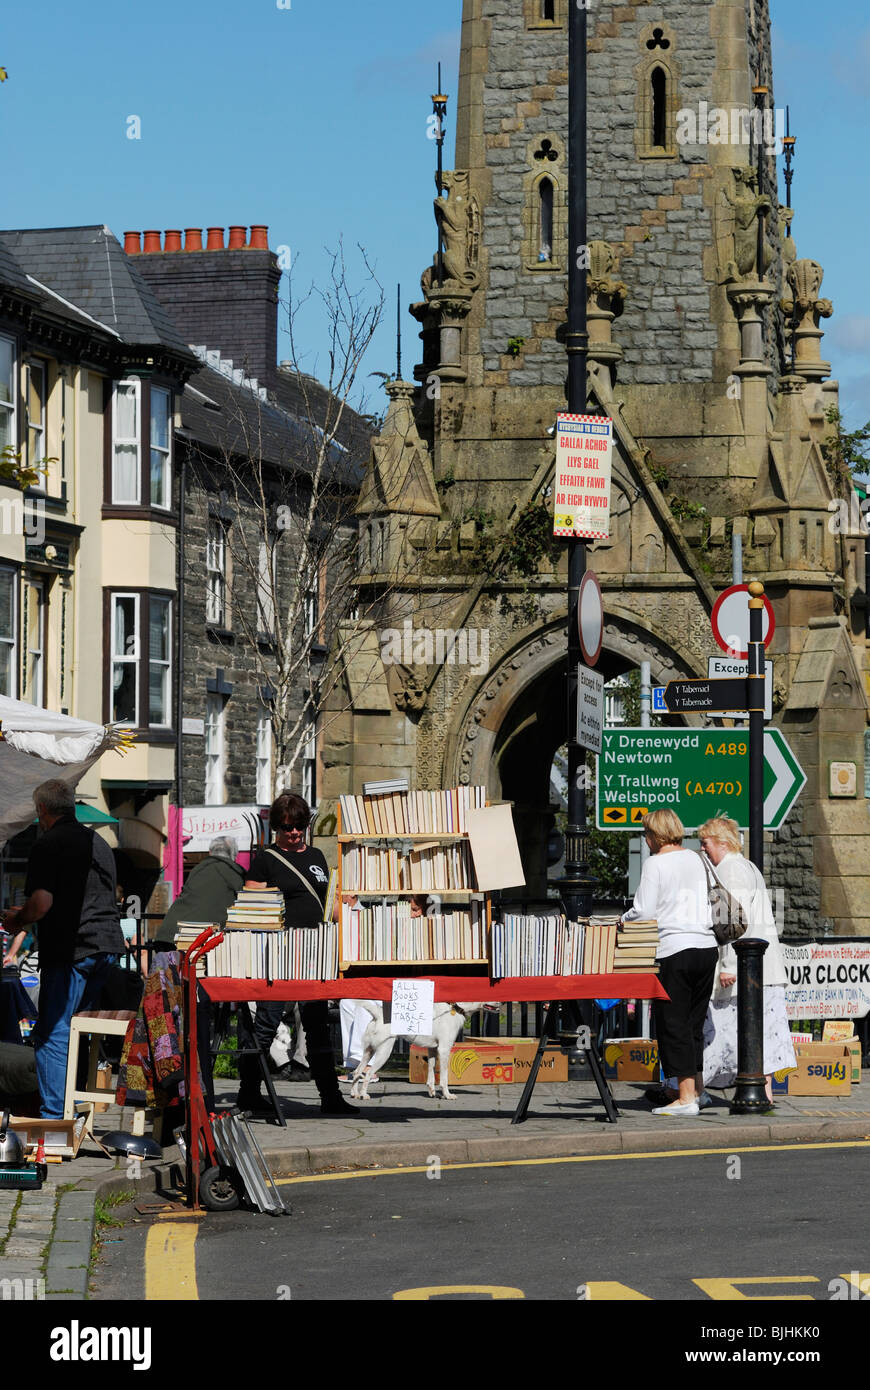 Secondhand book stall at Machynlleth market, Wales. - Stock Image